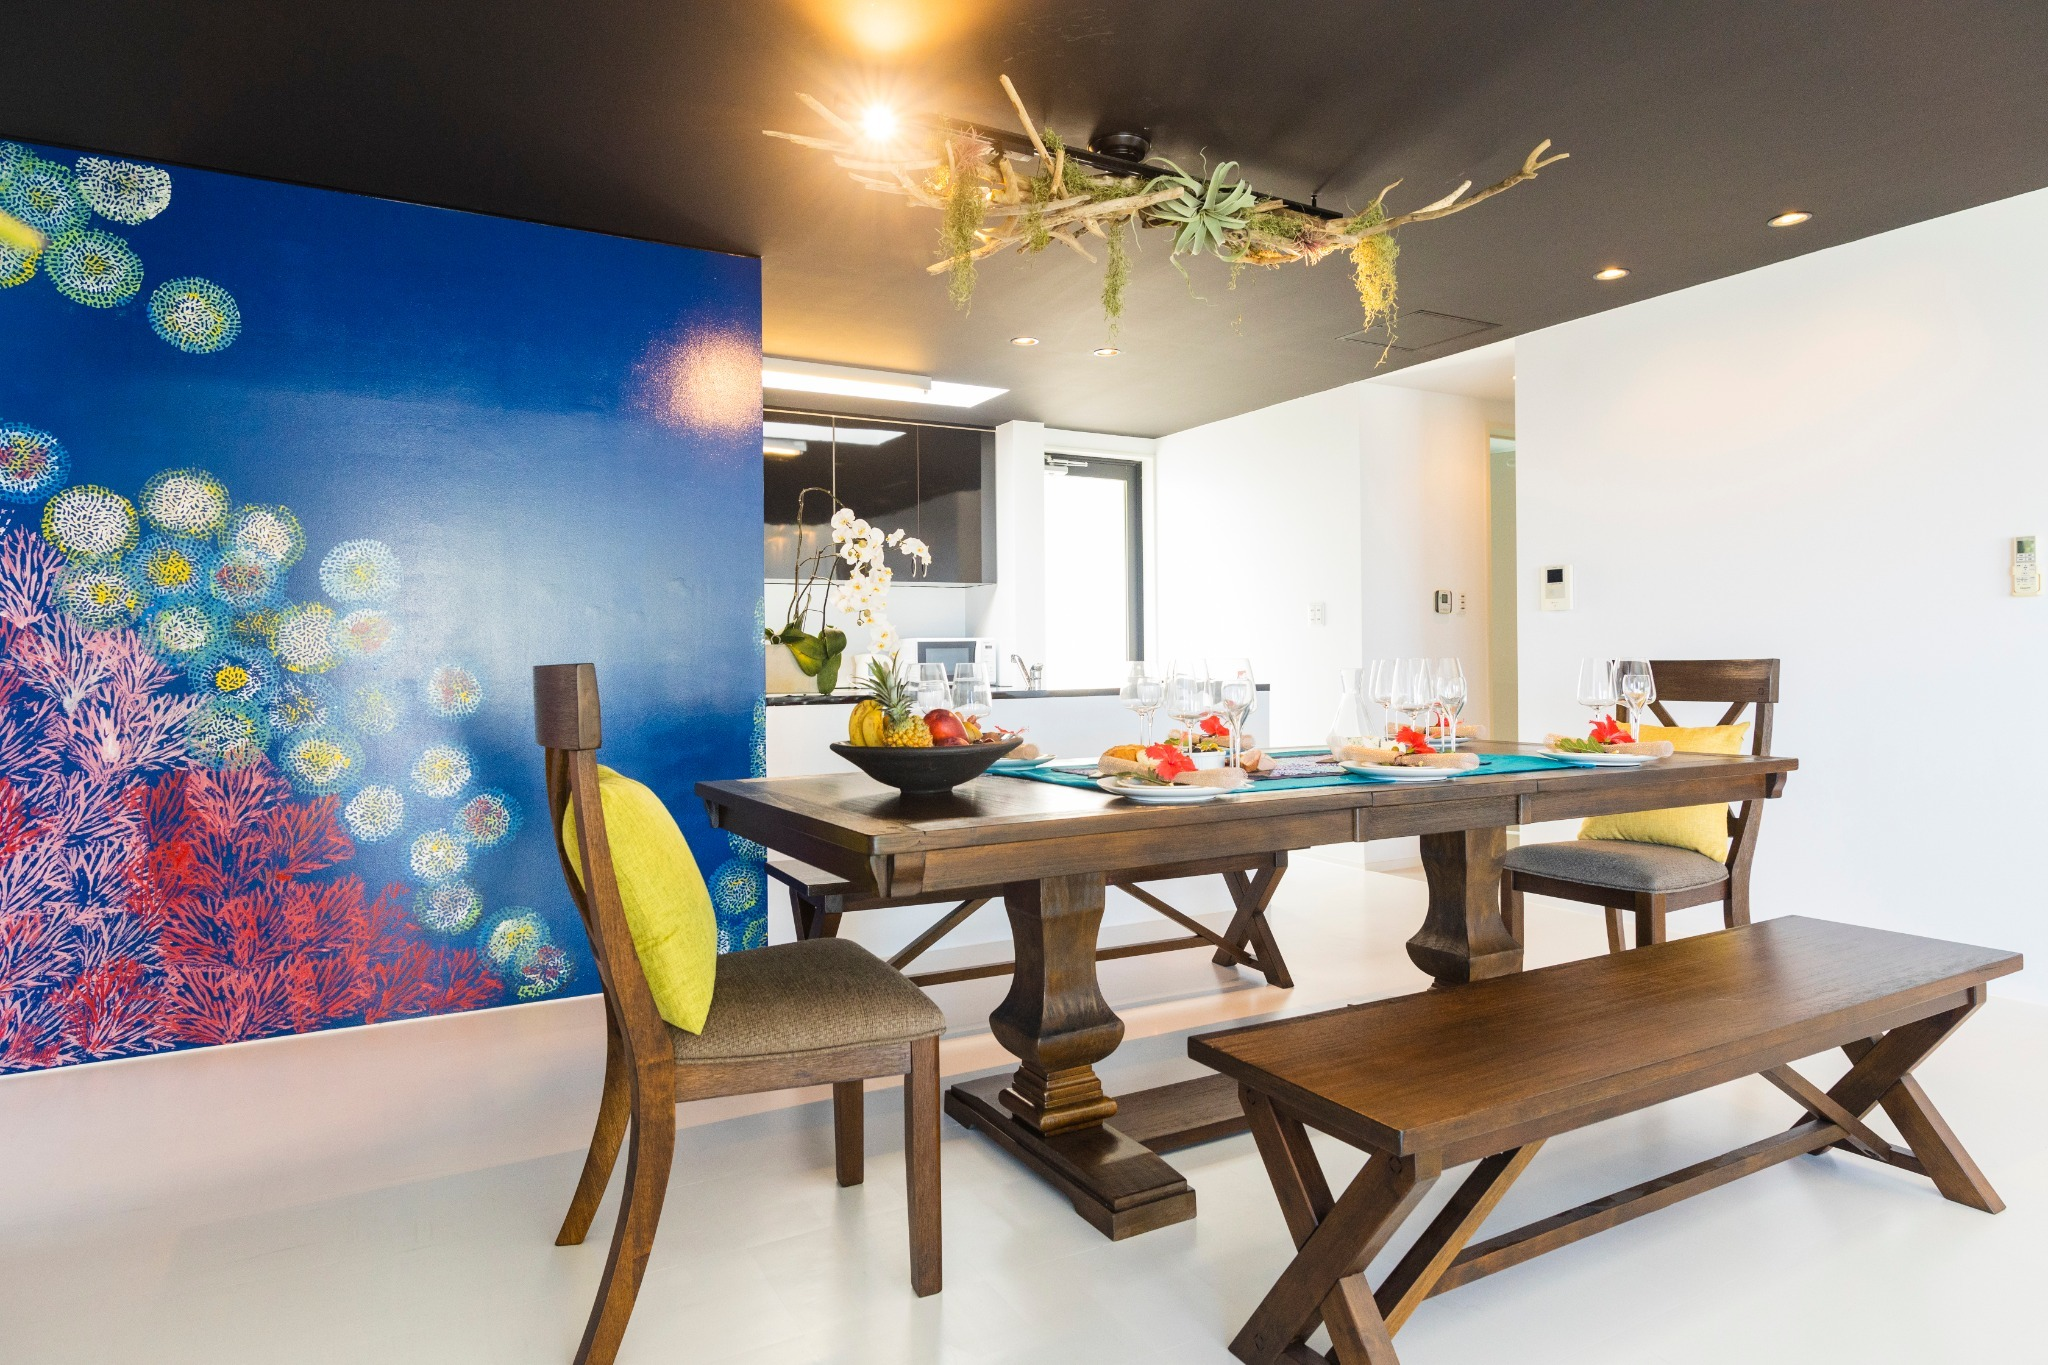 Imagine you are in the ocean at the dining space 海の中を連想させるダイニングスペース